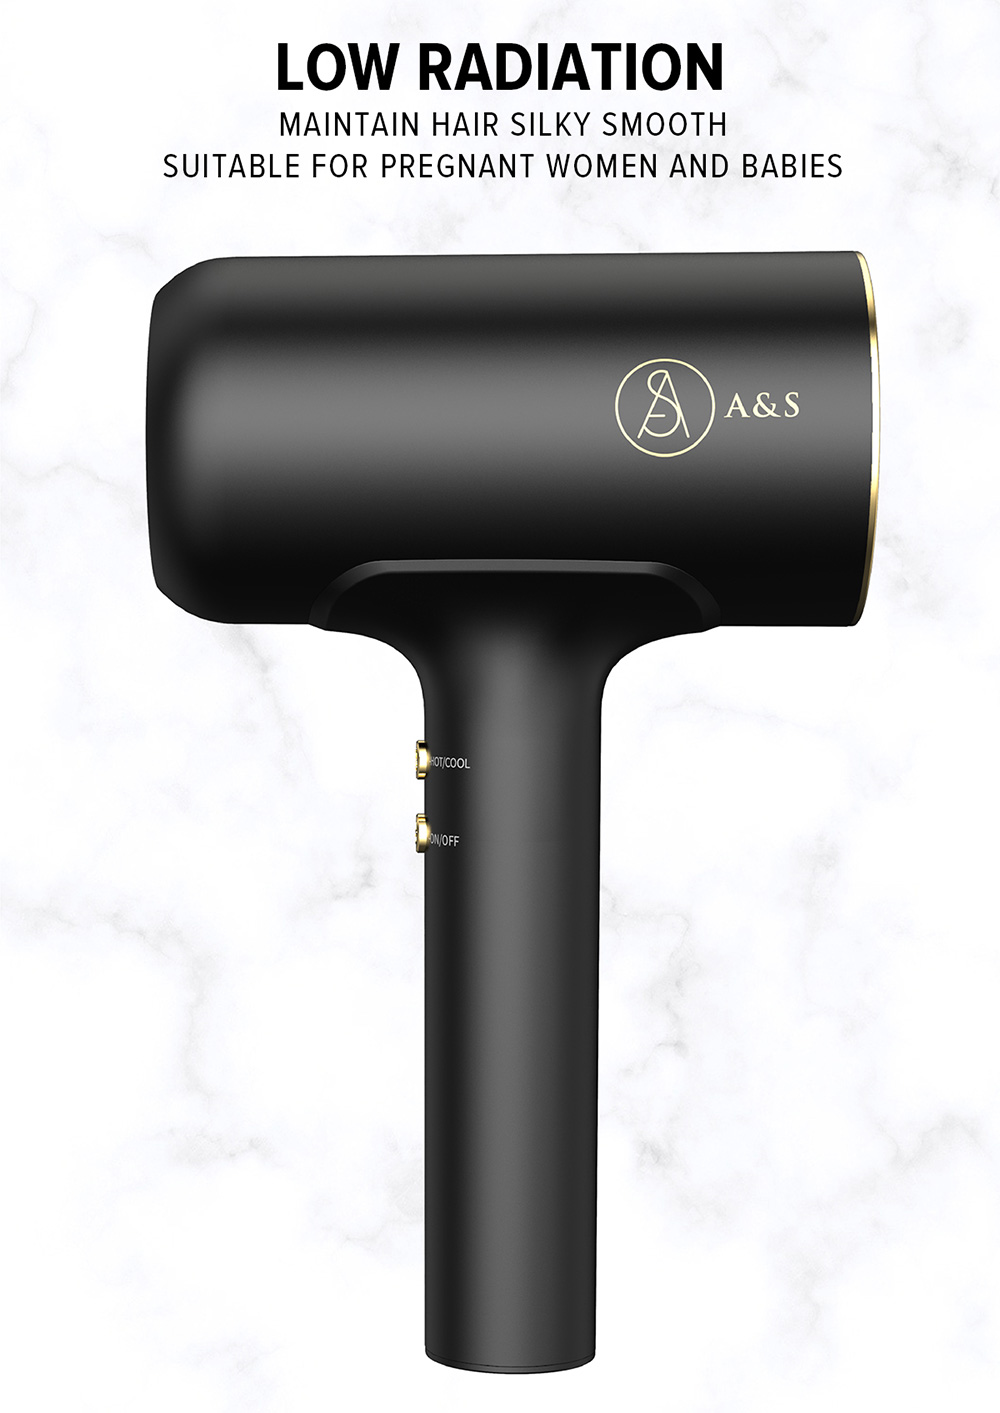 A&S Styler Cordless Hair Dryer